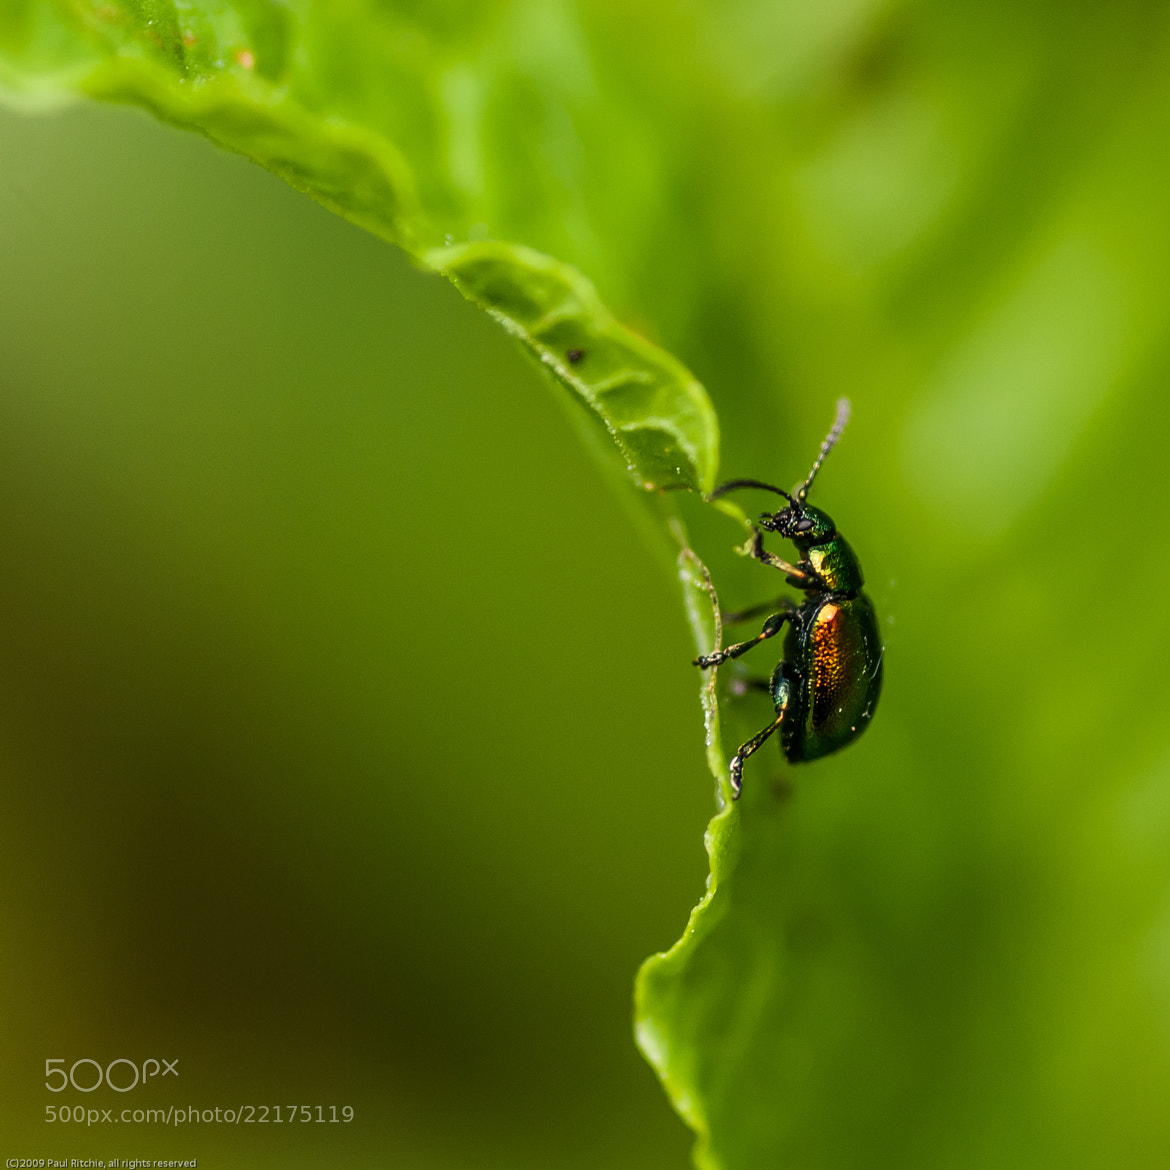 Photograph Green Dock Beetle by Paul Ritchie on 500px